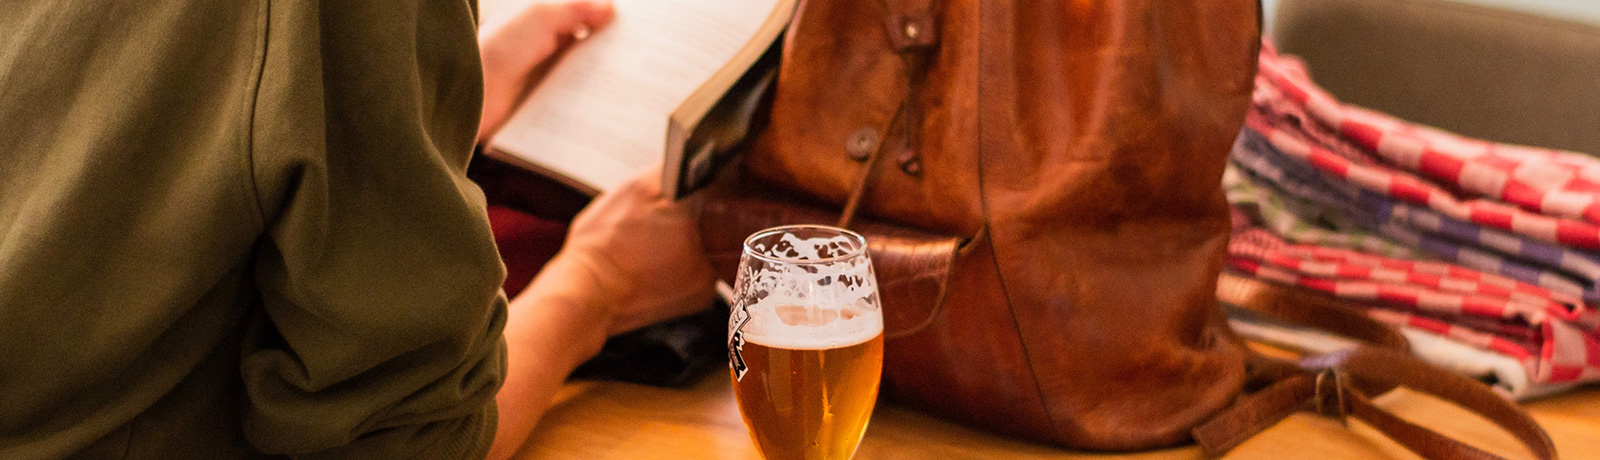 beer news nibbles and tipples